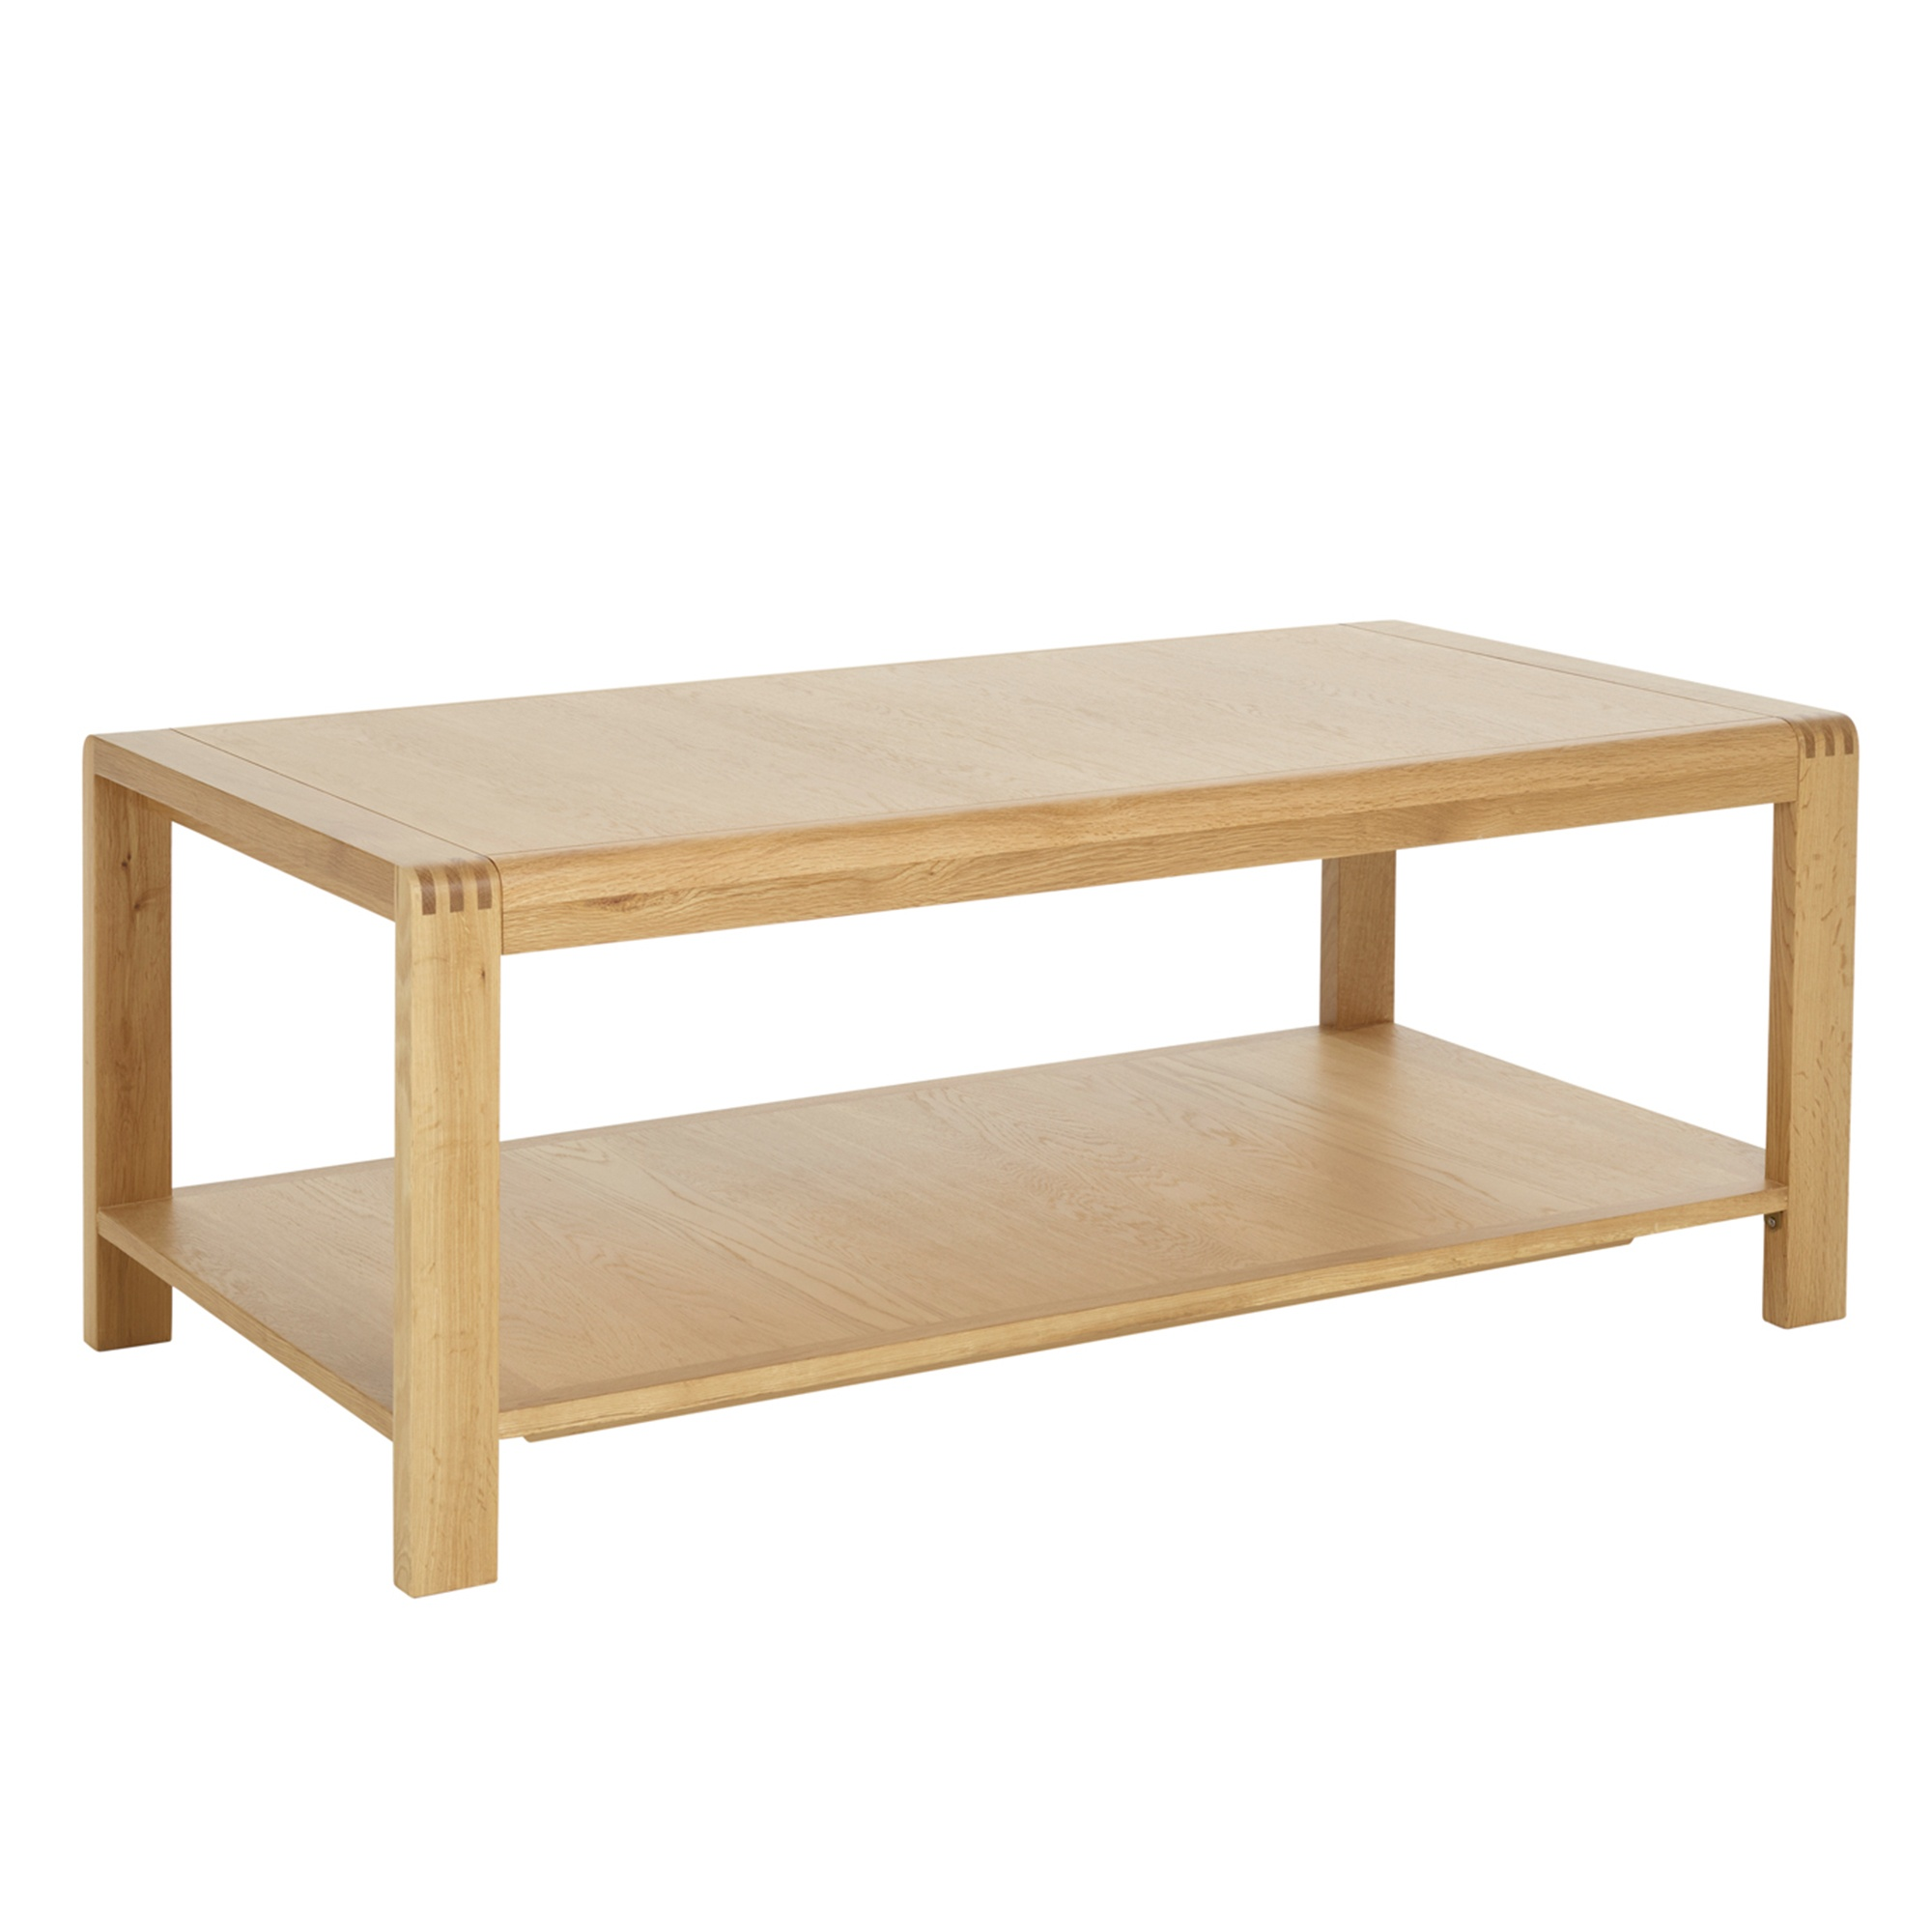 Ercol Oval Coffee Table: Ercol Bosco Dining Coffee Table